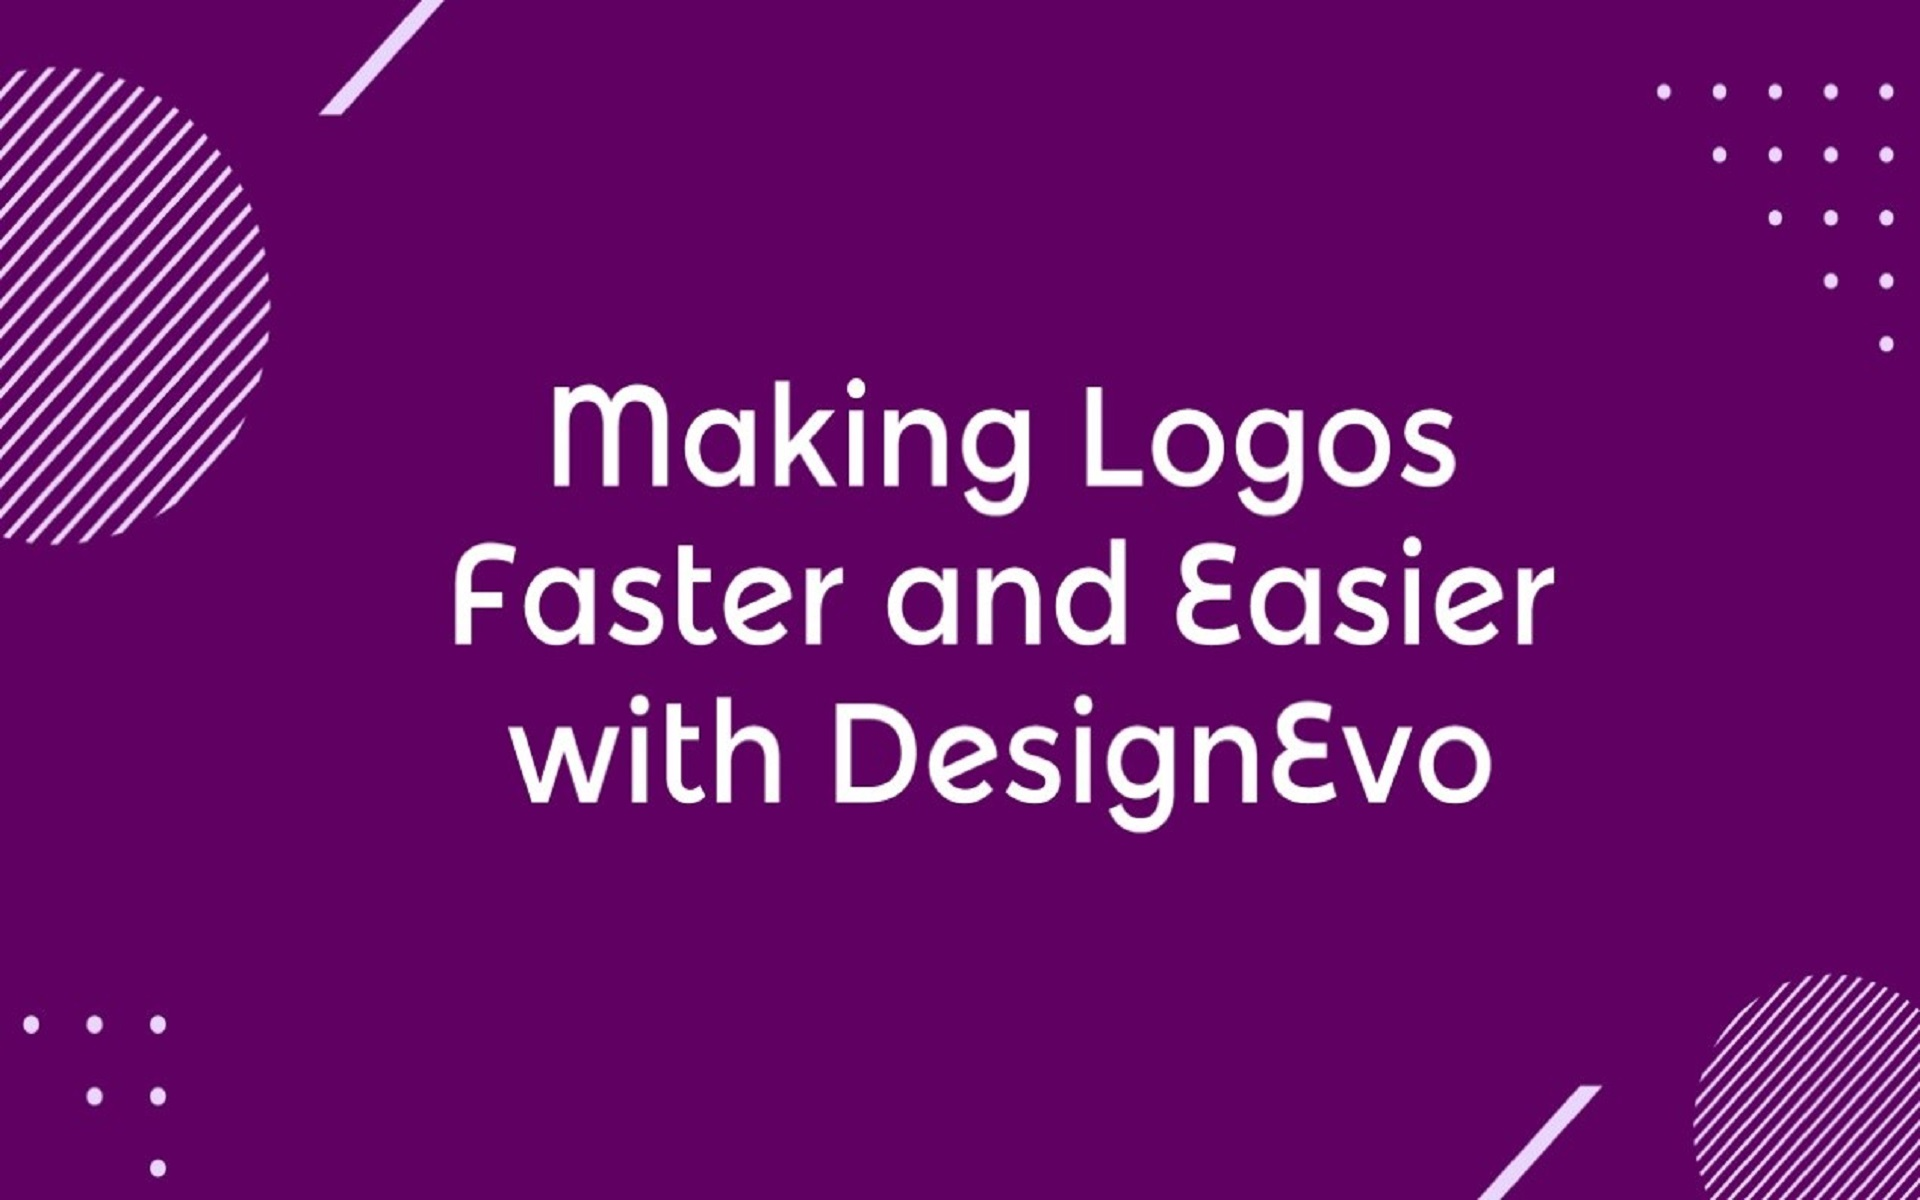 Making Logos Faster and Easier with DesignEvo